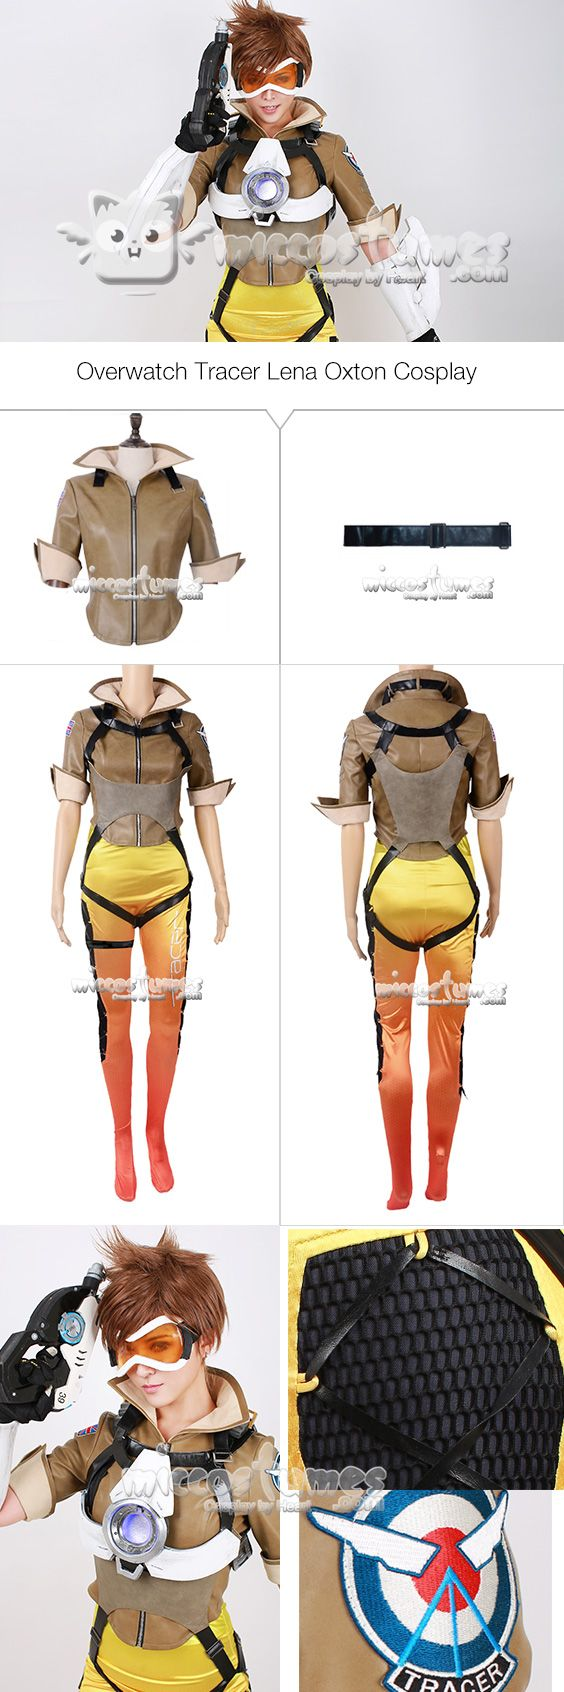 More details of Overwatch Tracer Lena Oxton Cosplay Costume  #cosplay #miccostumes #Overwatch #tracer #Cosplaycostumes #LenaOxton #Costume